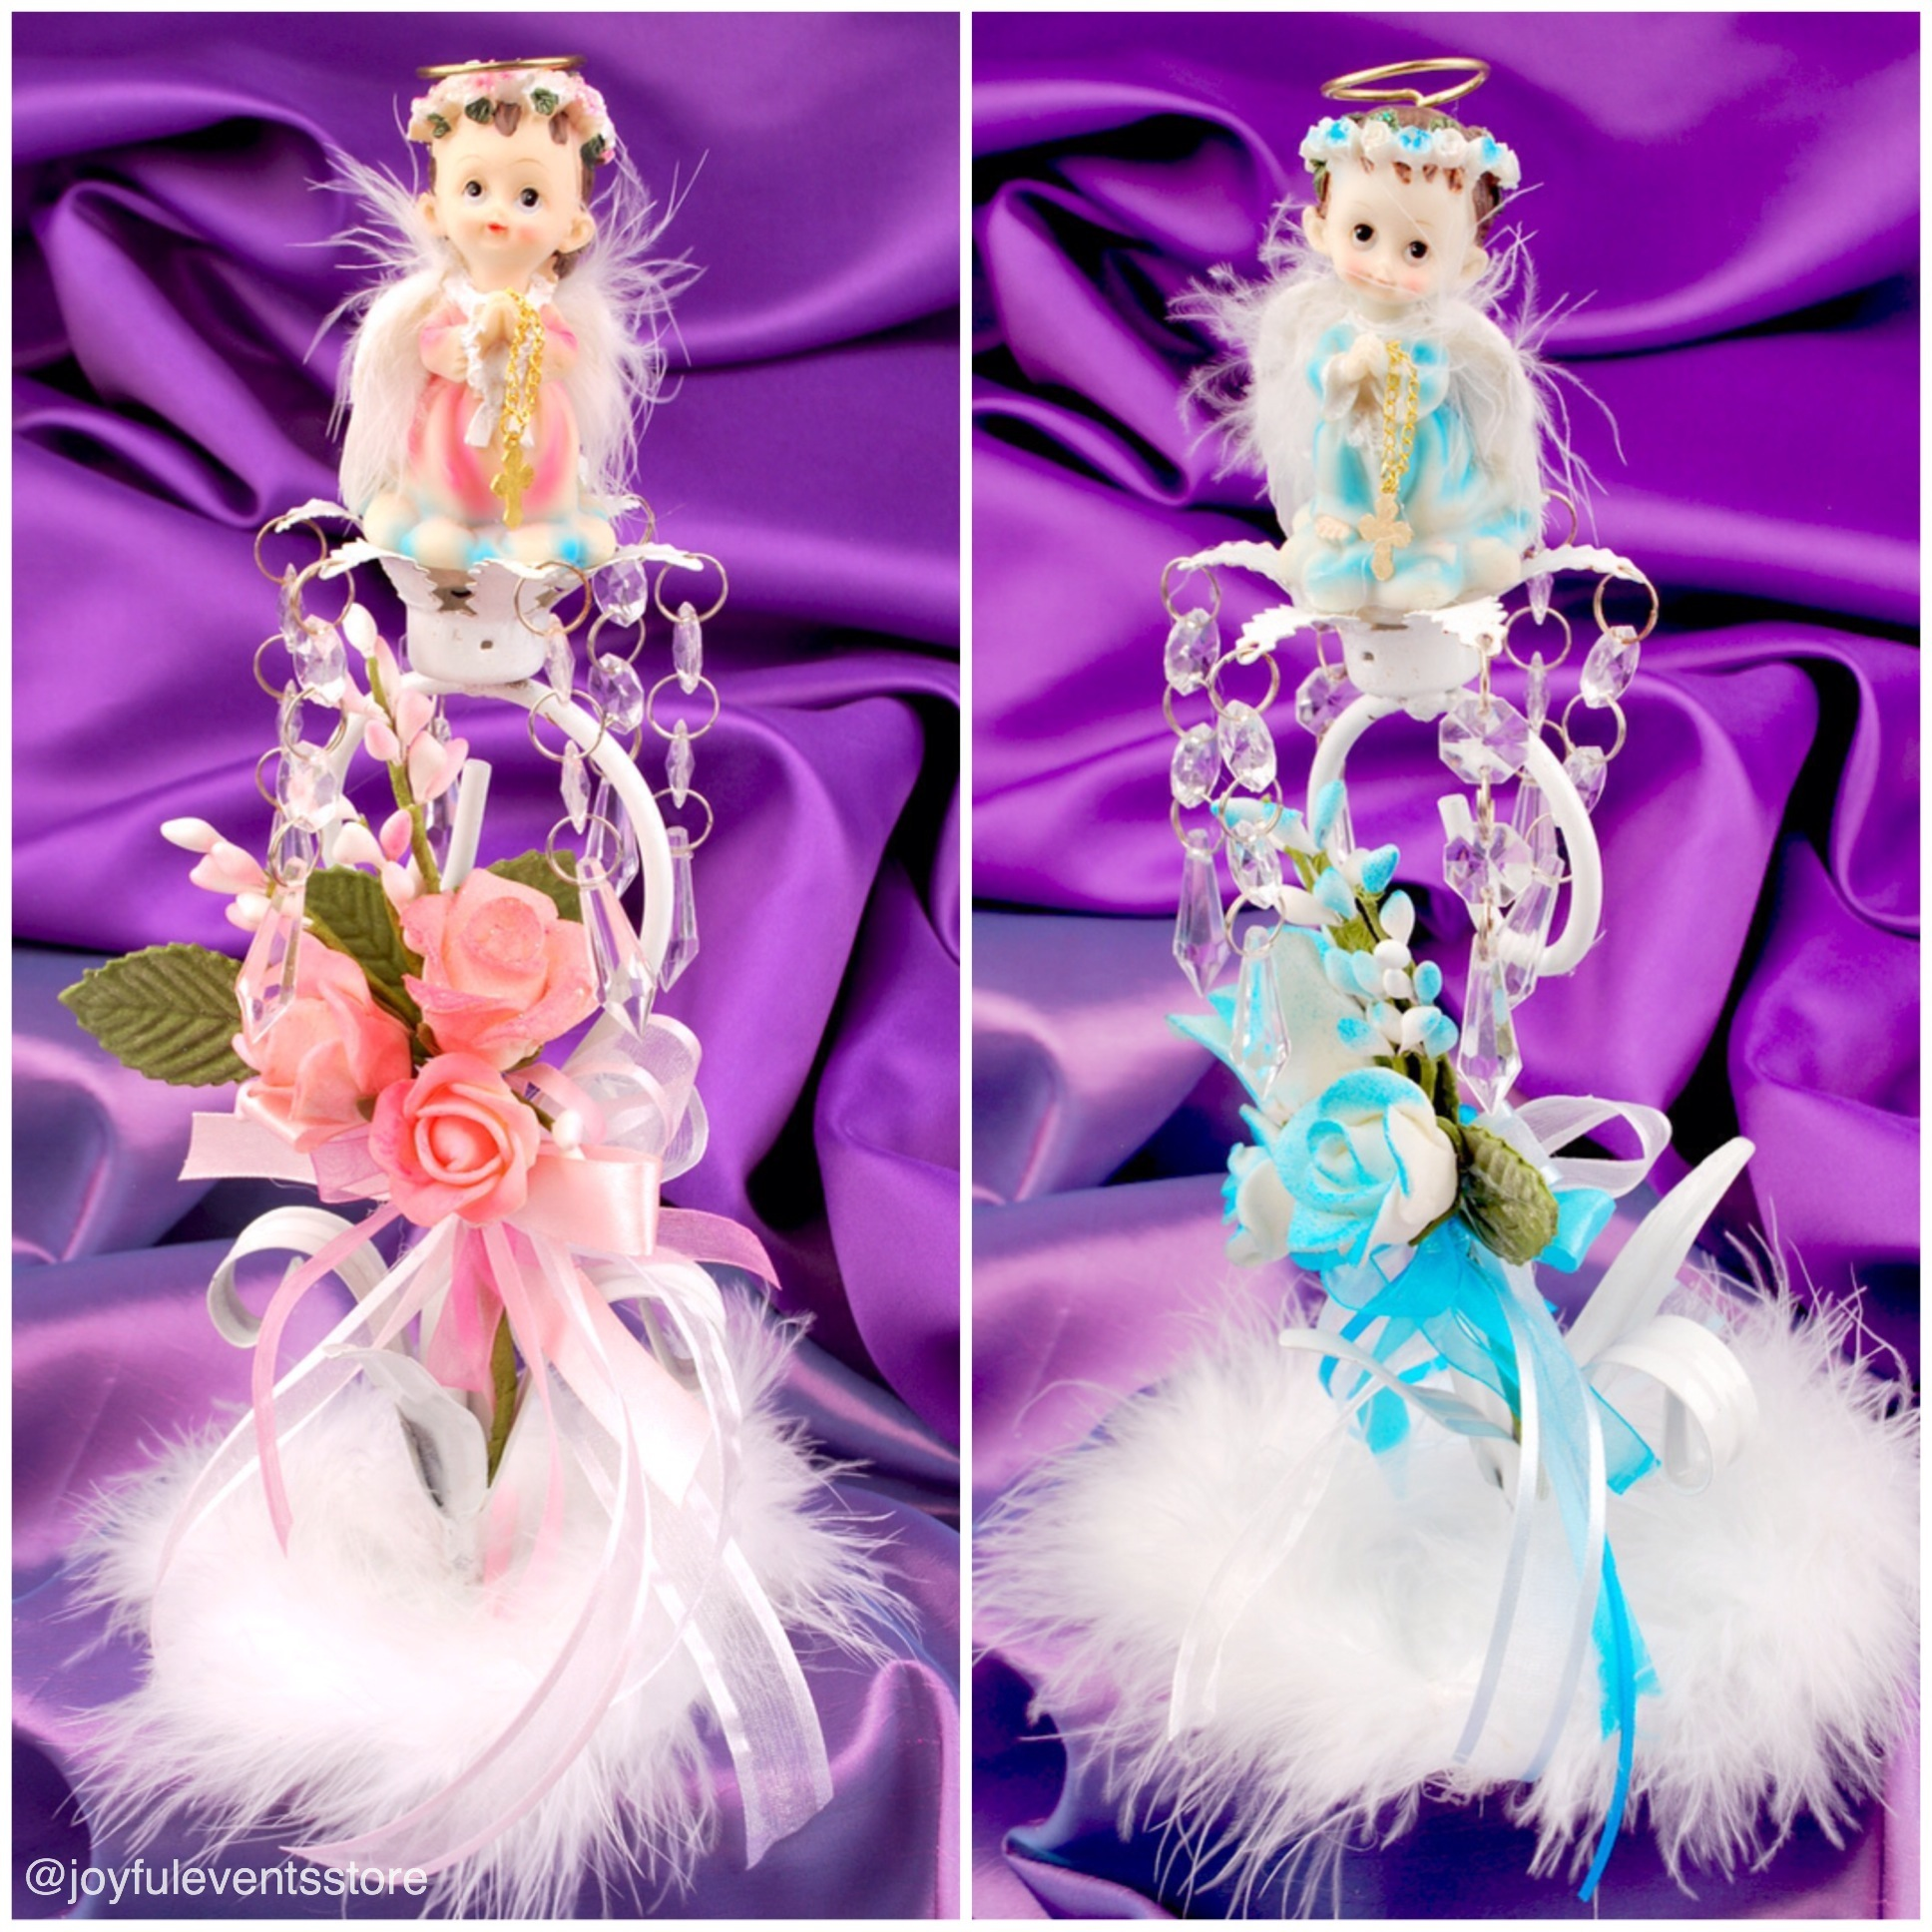 Beautiful Baptism Centerpieces - Joyful Events Store